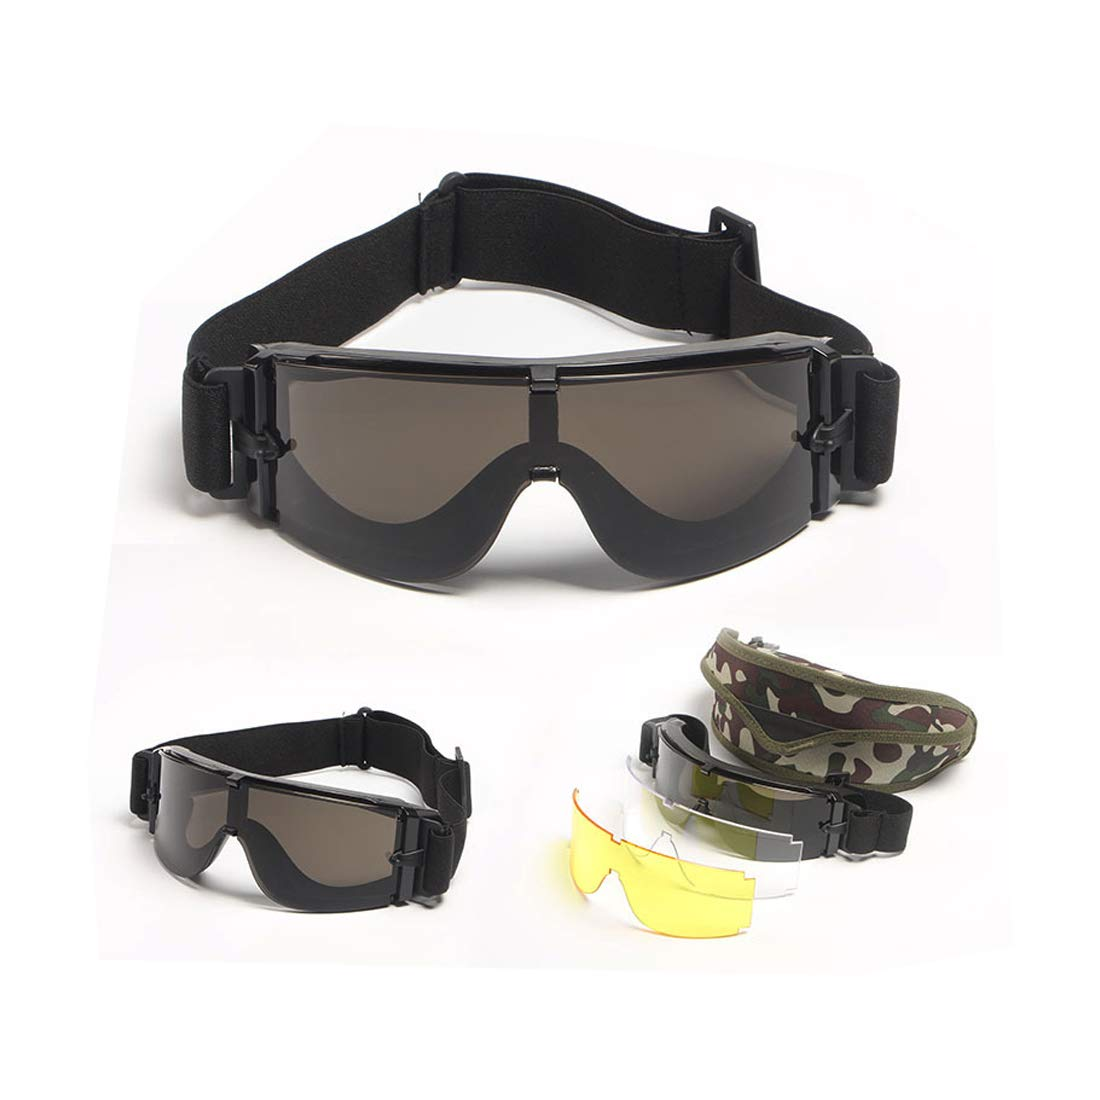 spiid メンズ  X800 Military Goggles B07HMYMHHC